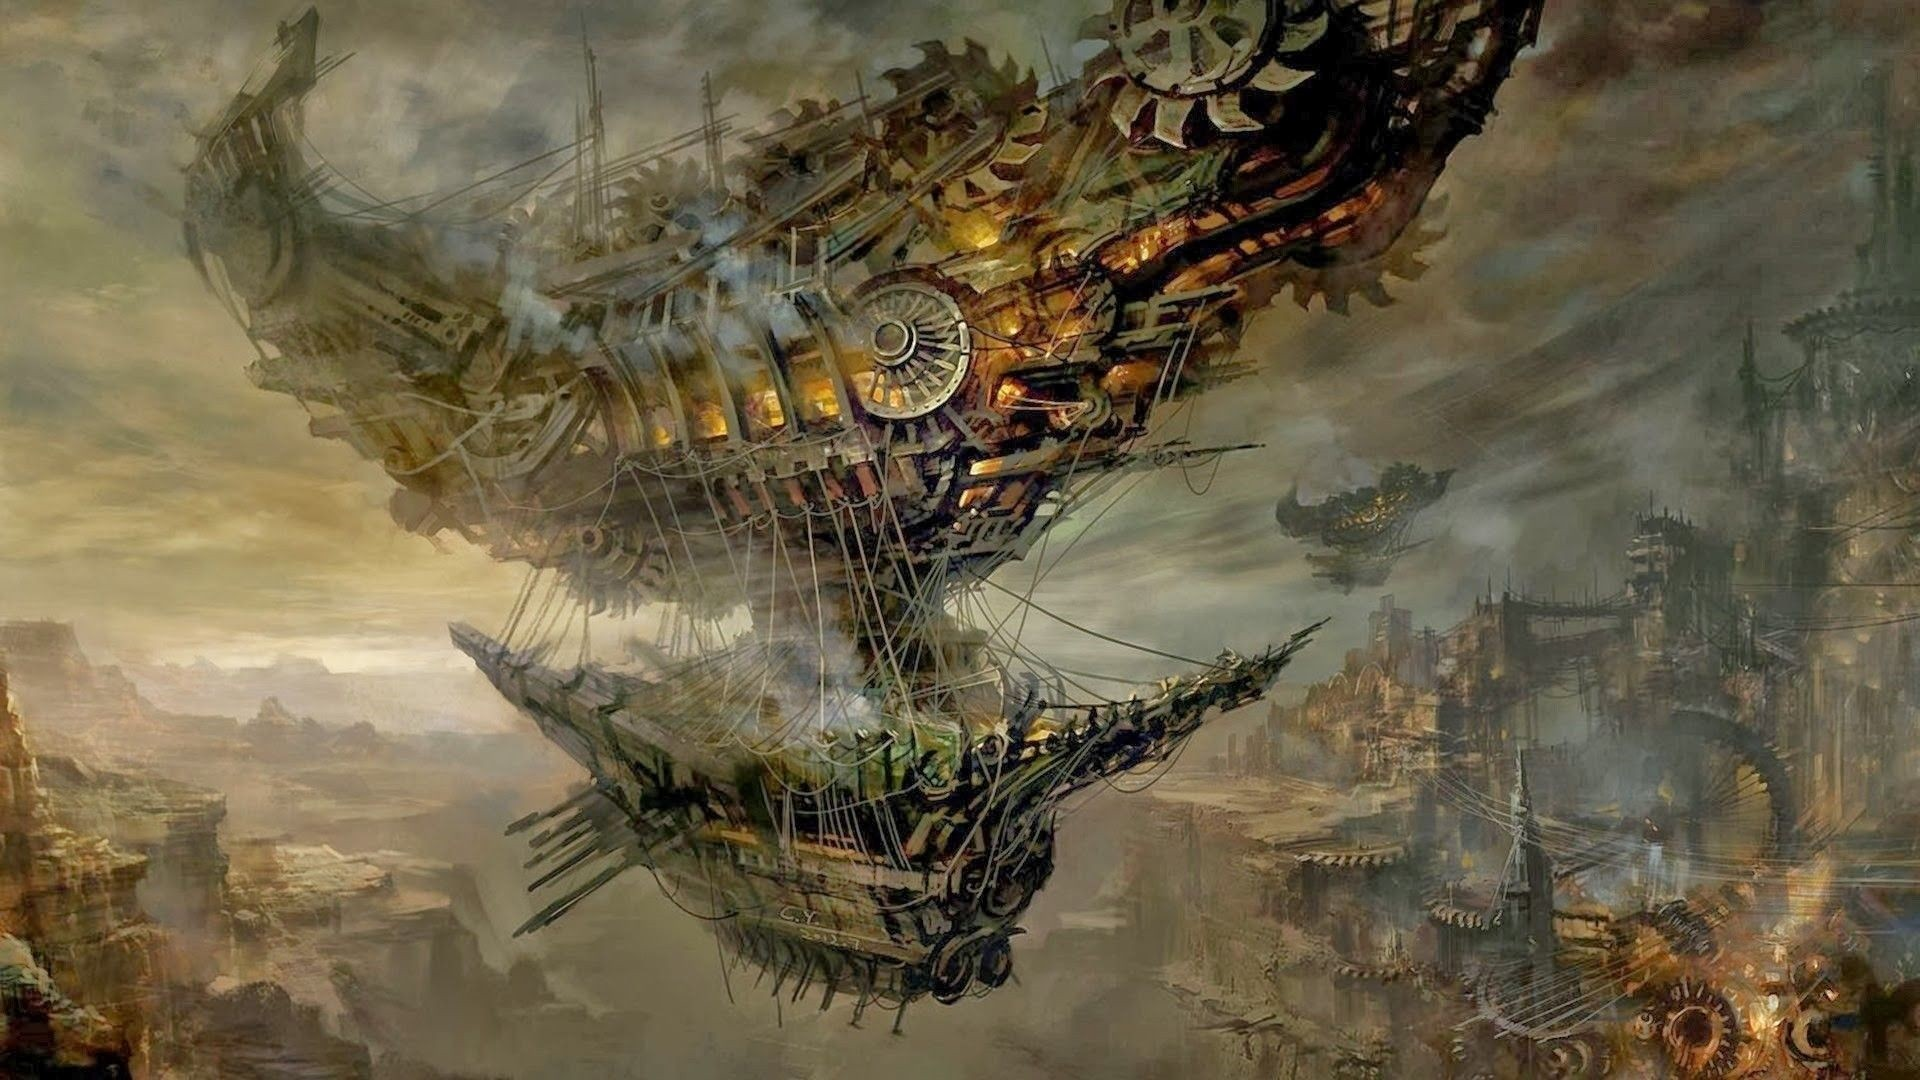 Steampunk Wallpaper for pc